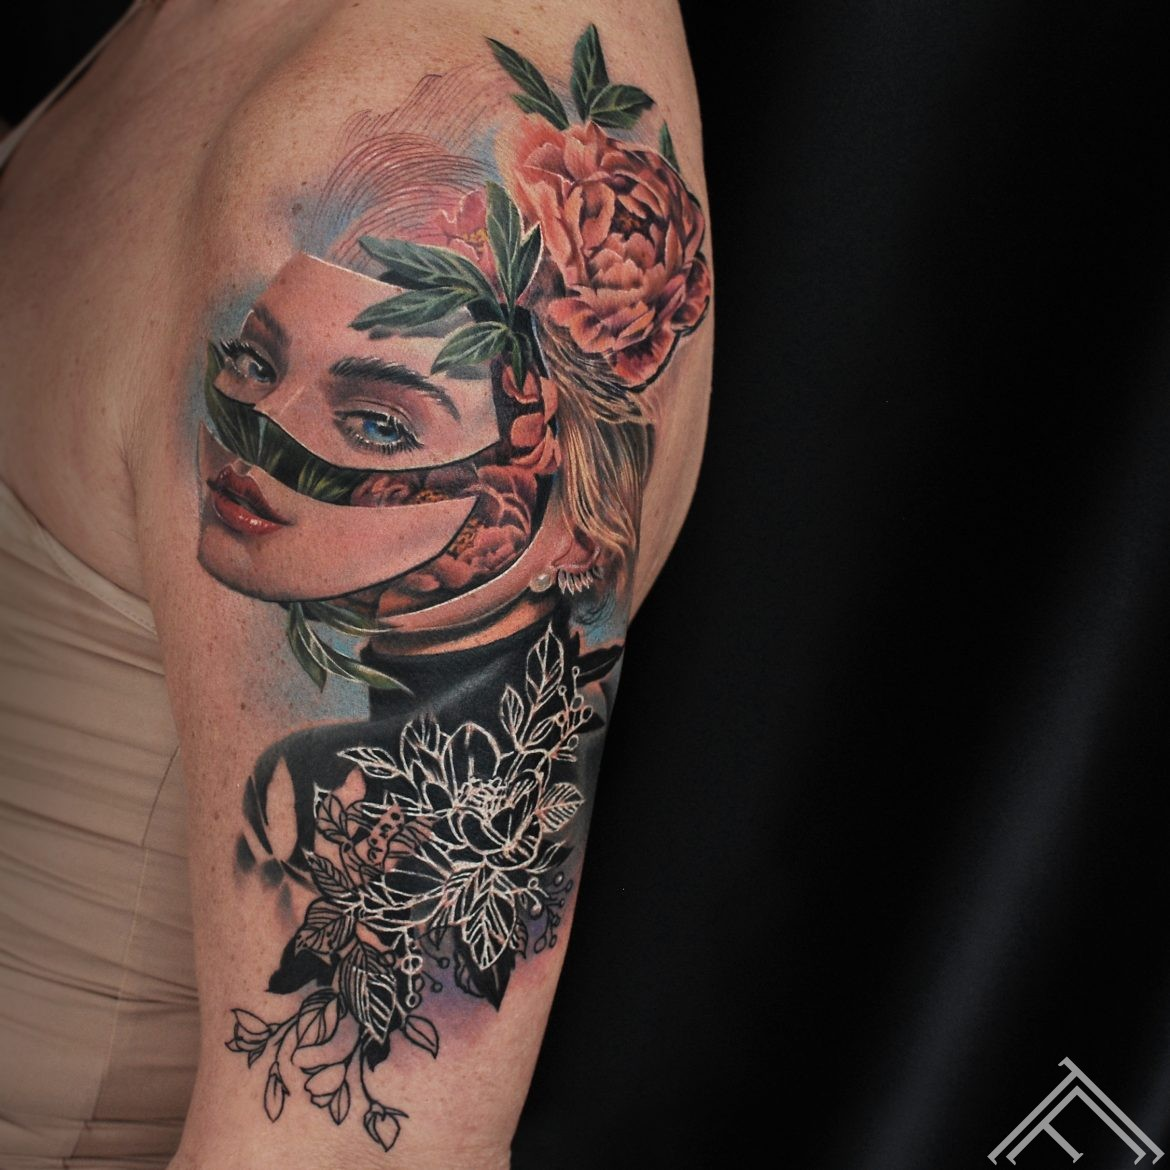 face-peony-woman-portrait-mask-flowers-maska-ziedi-peonijas-tattoo-tattoofrequency-riga-at-marispavlo-secet